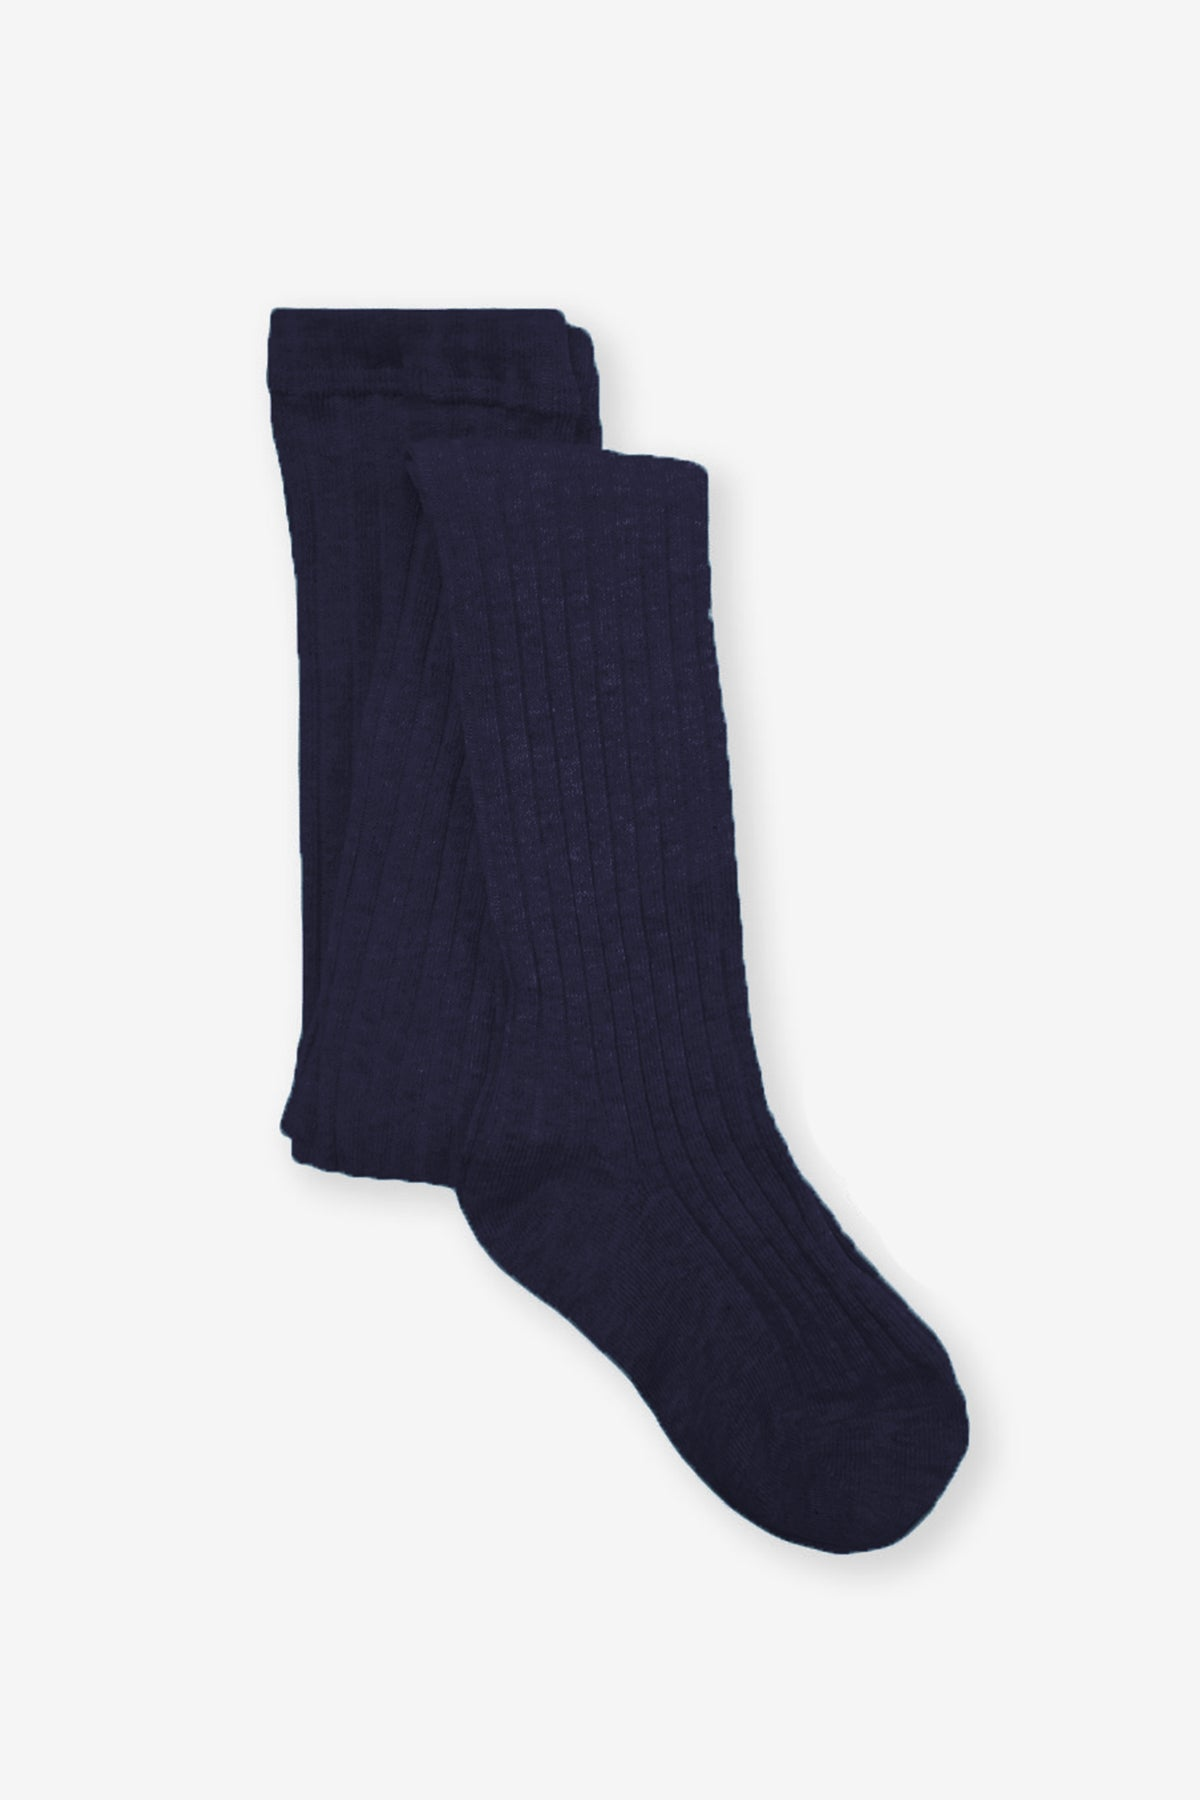 Jefferies Socks Rib Tights - Navy